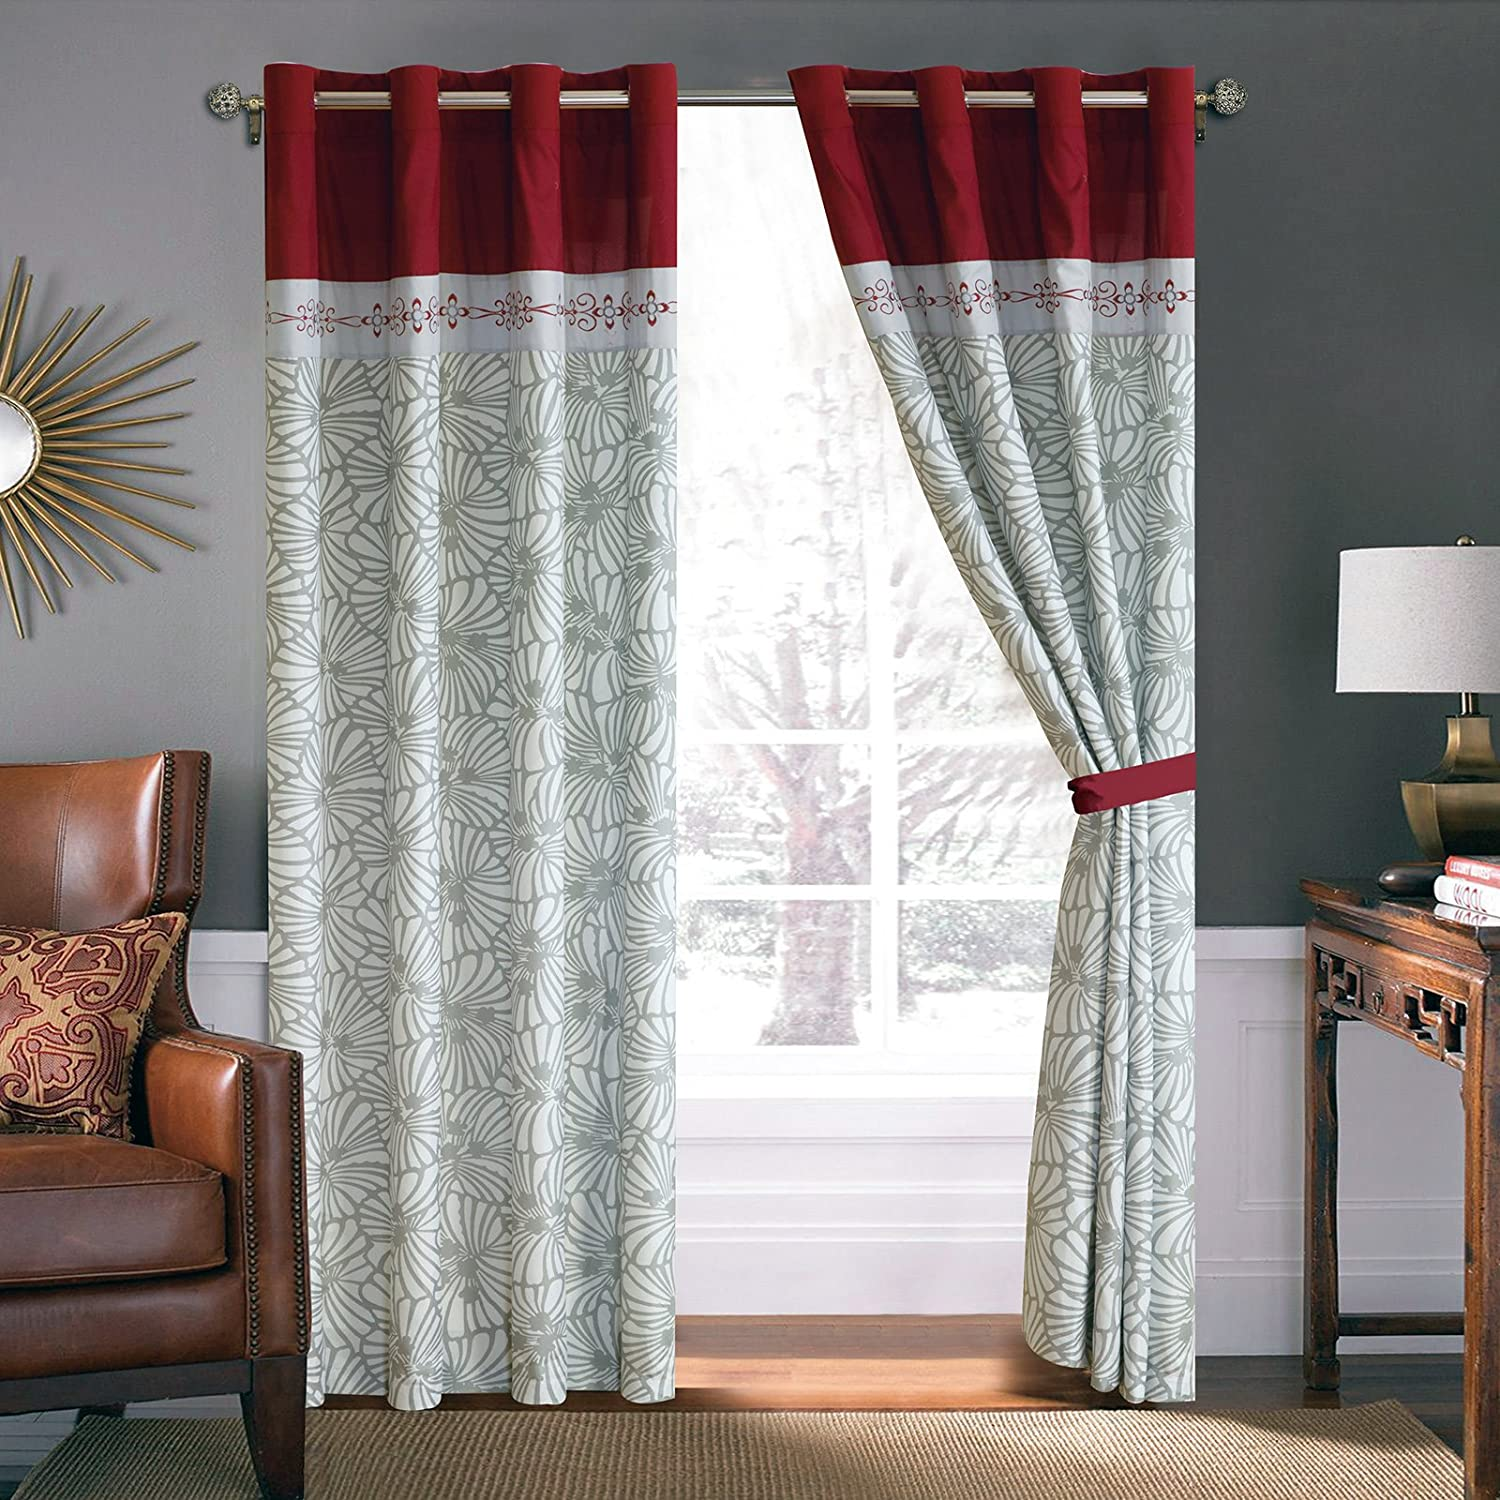 Red Burgundy Floral Window Curtains Ease Bedding With Style